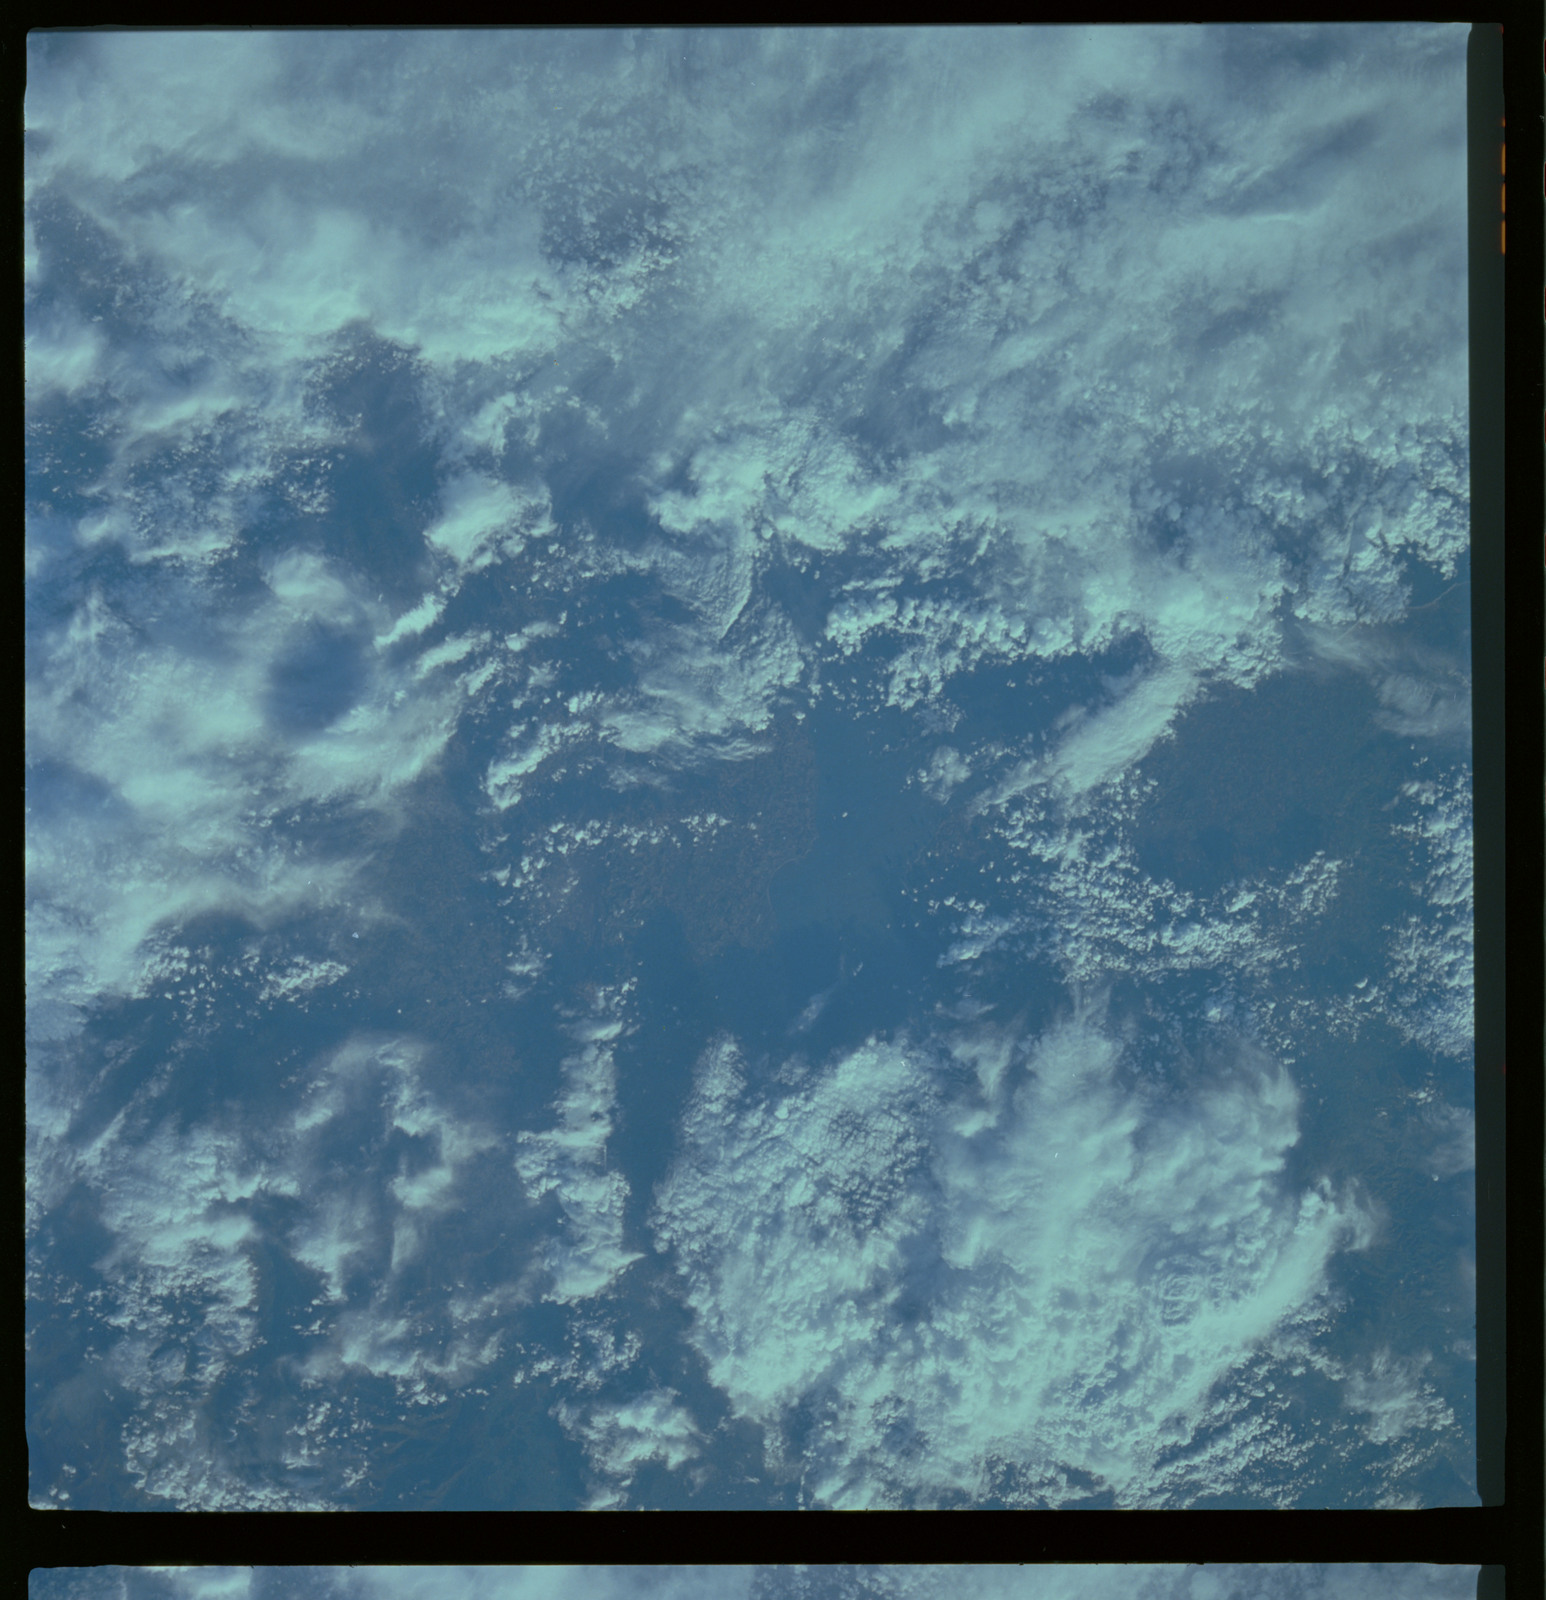 61A-486-003 - STS-61A - STS-61A ESA earth observations